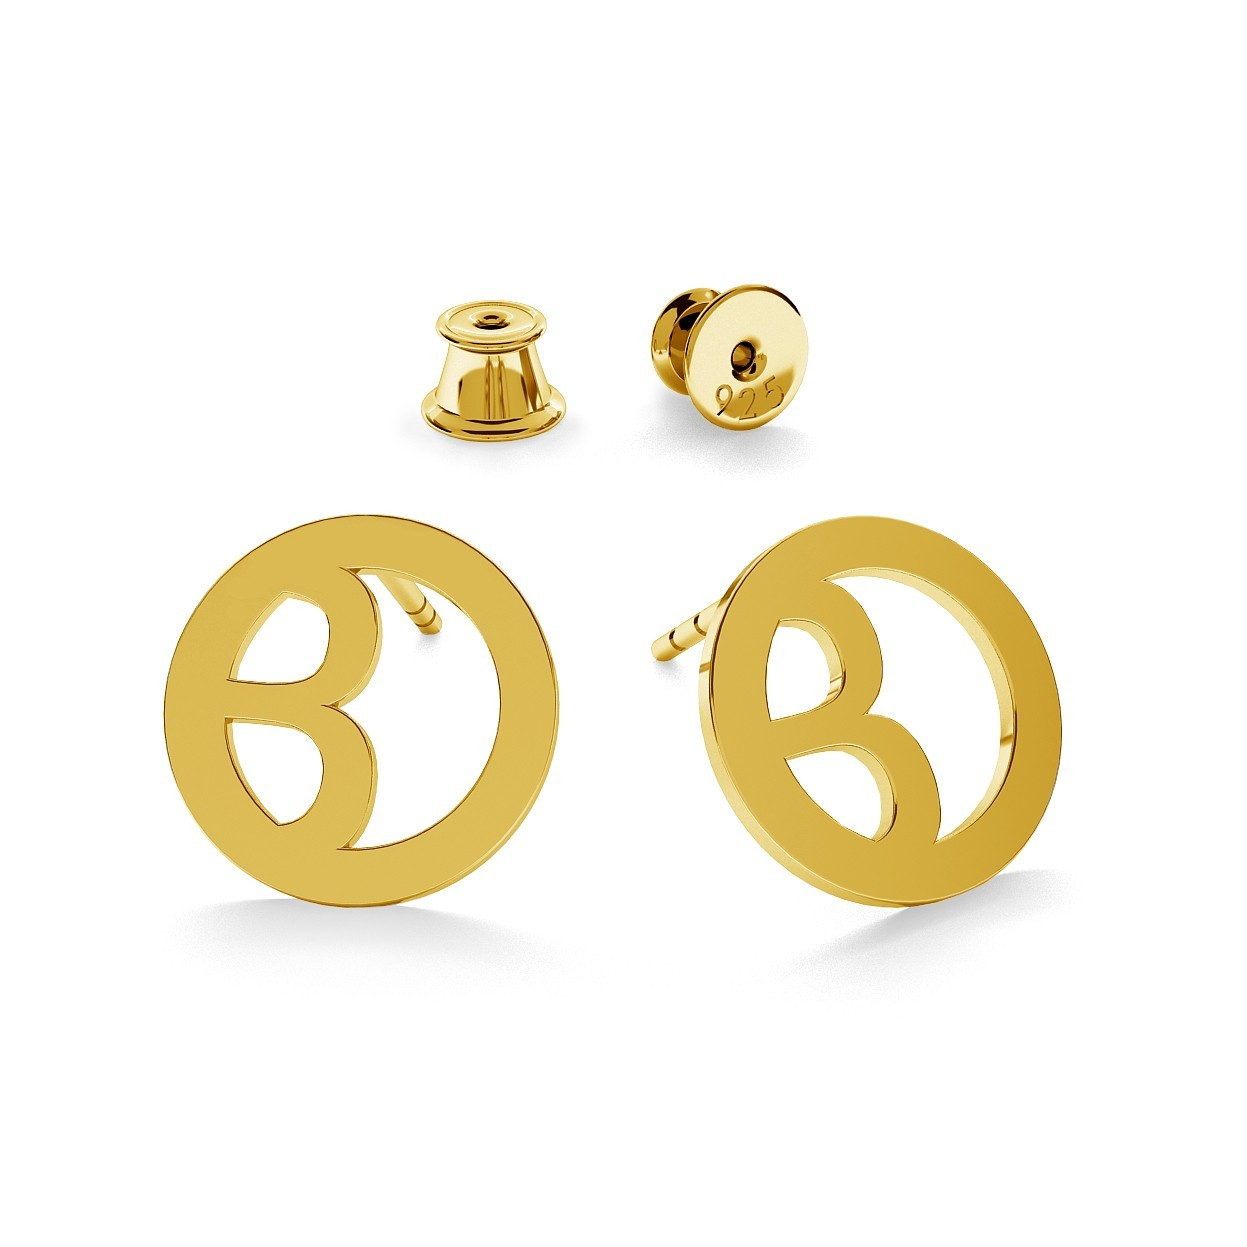 Earrings BASIA OLEARKA BRAND